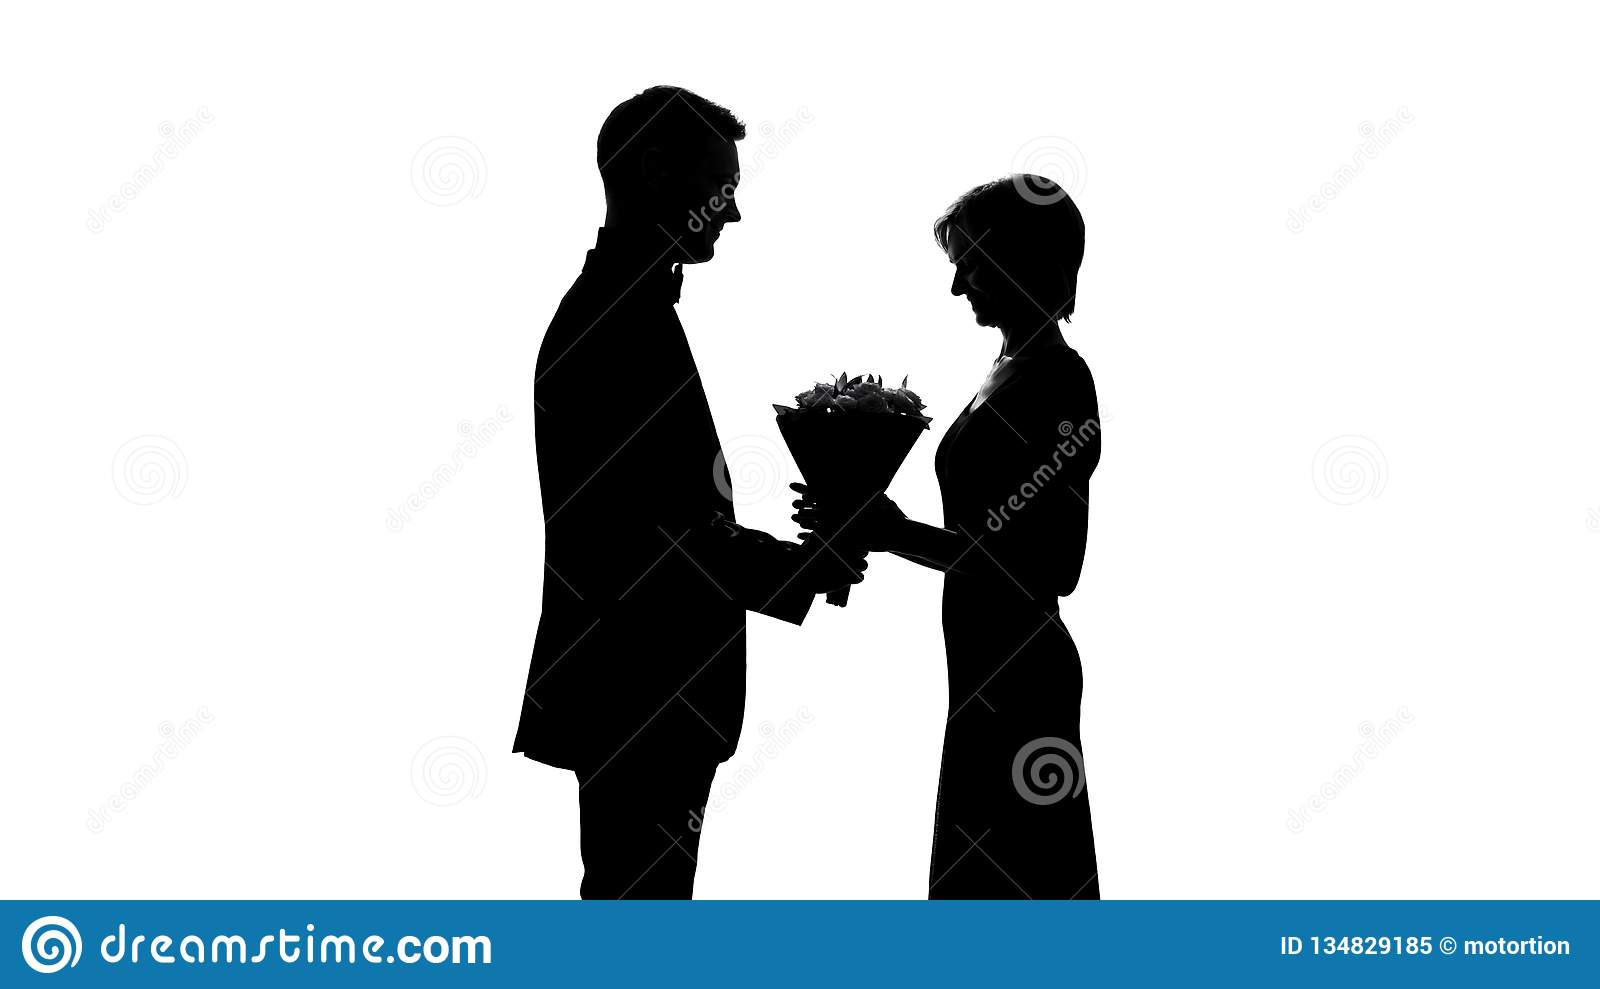 Happy woman receiving flower bouquet from man, romantic gift for anniversary